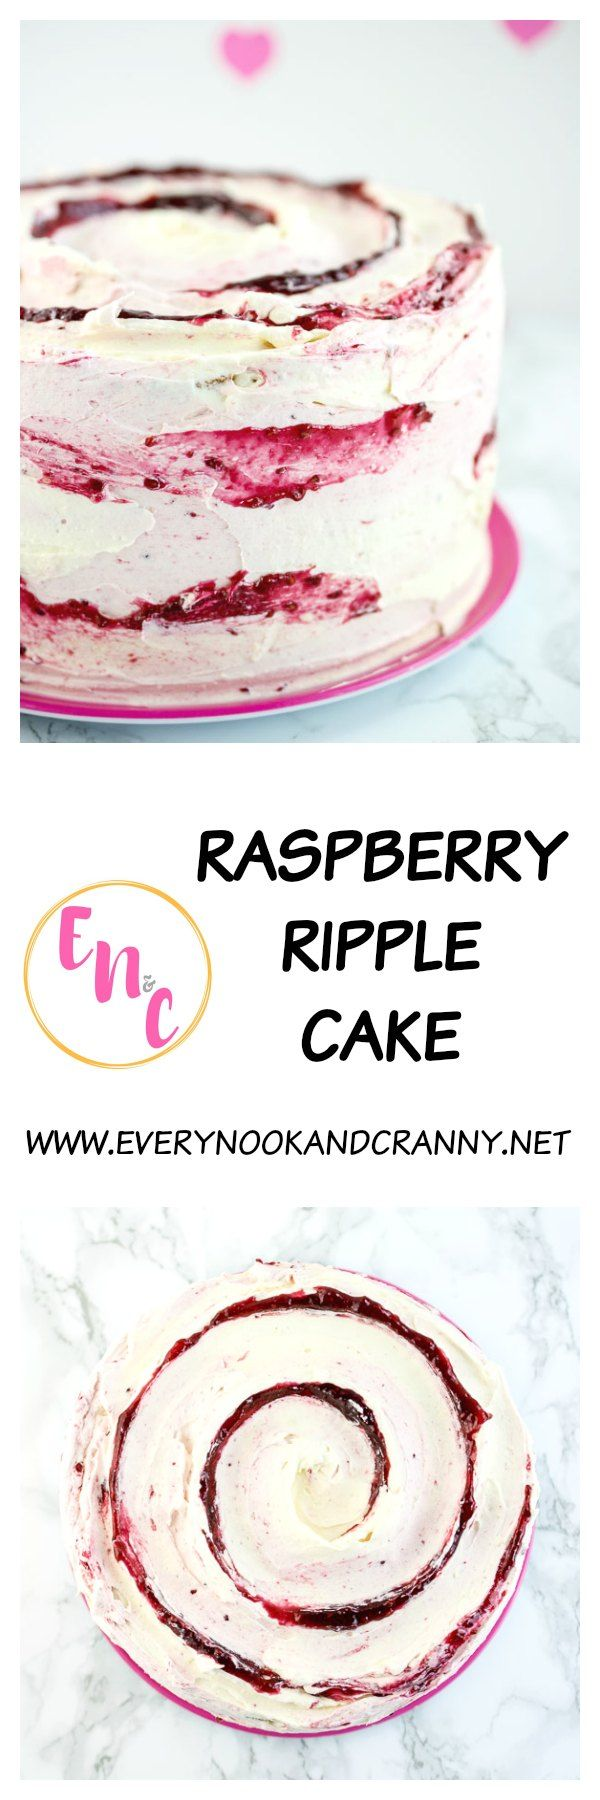 Raspberry Ripple Cake - a light and fluffy vanilla cake filled with raspberry jam and frosted with ripples of both white chocolate and raspberry Italian meringue buttercream